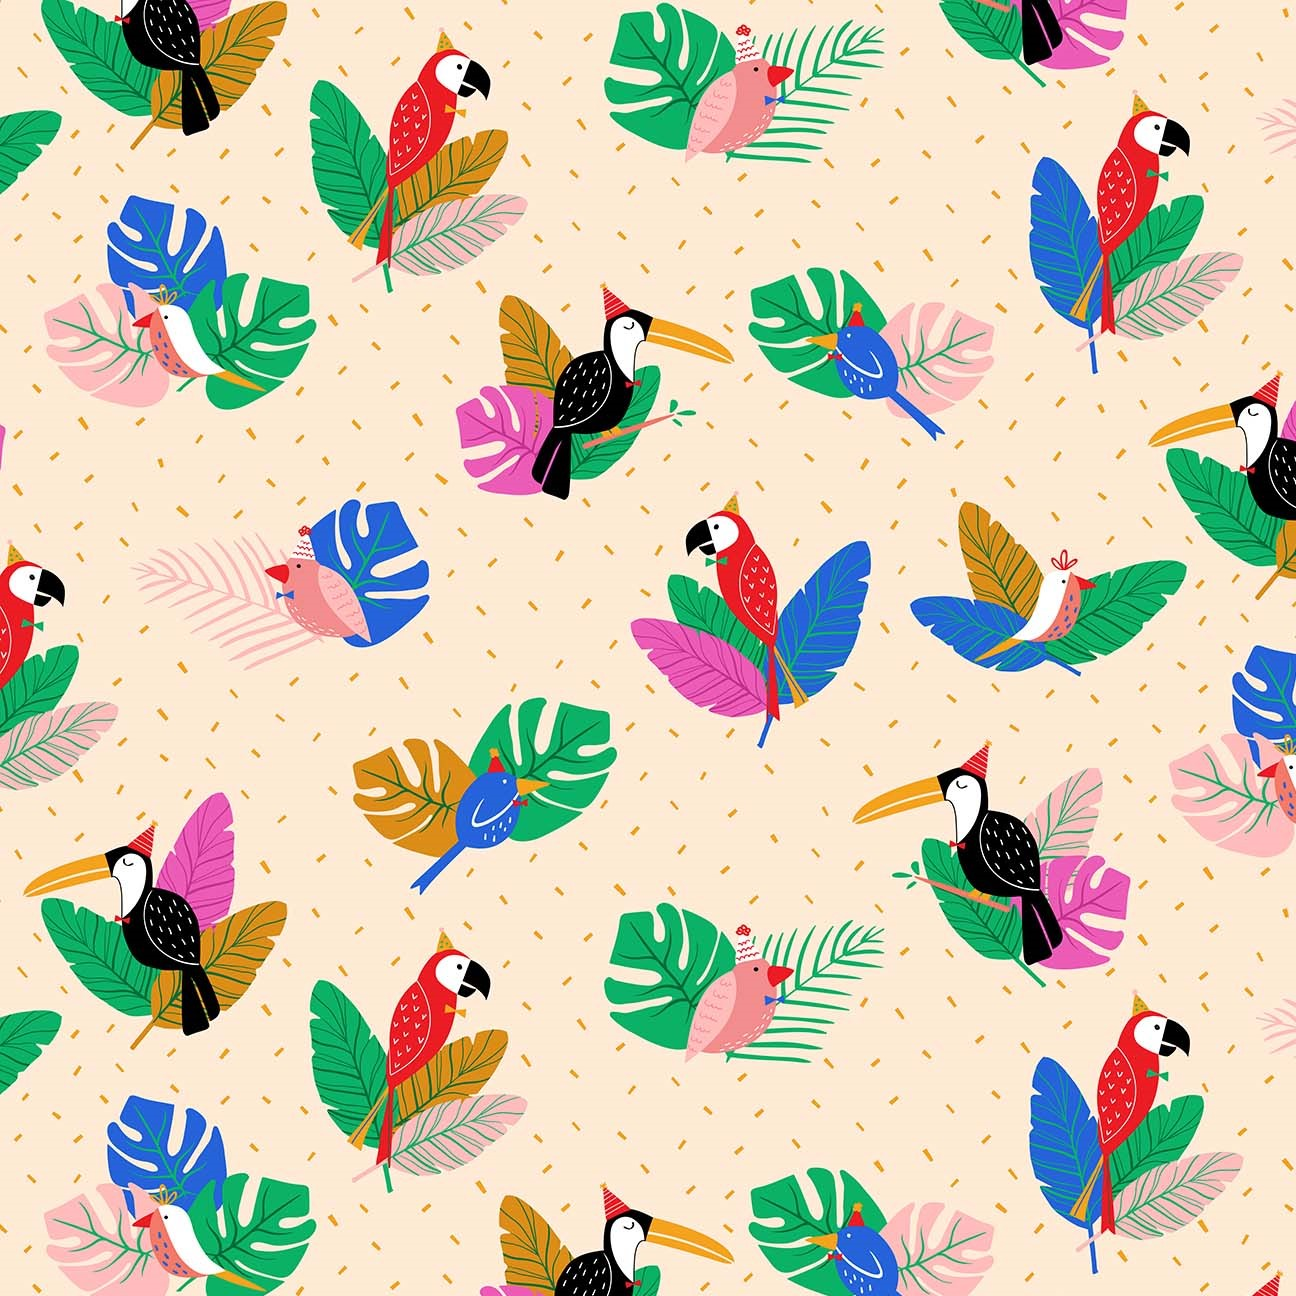 Party Birds Cream from the Tropical Jammin' collection by Figo Fabrics, 100% cotton fabric